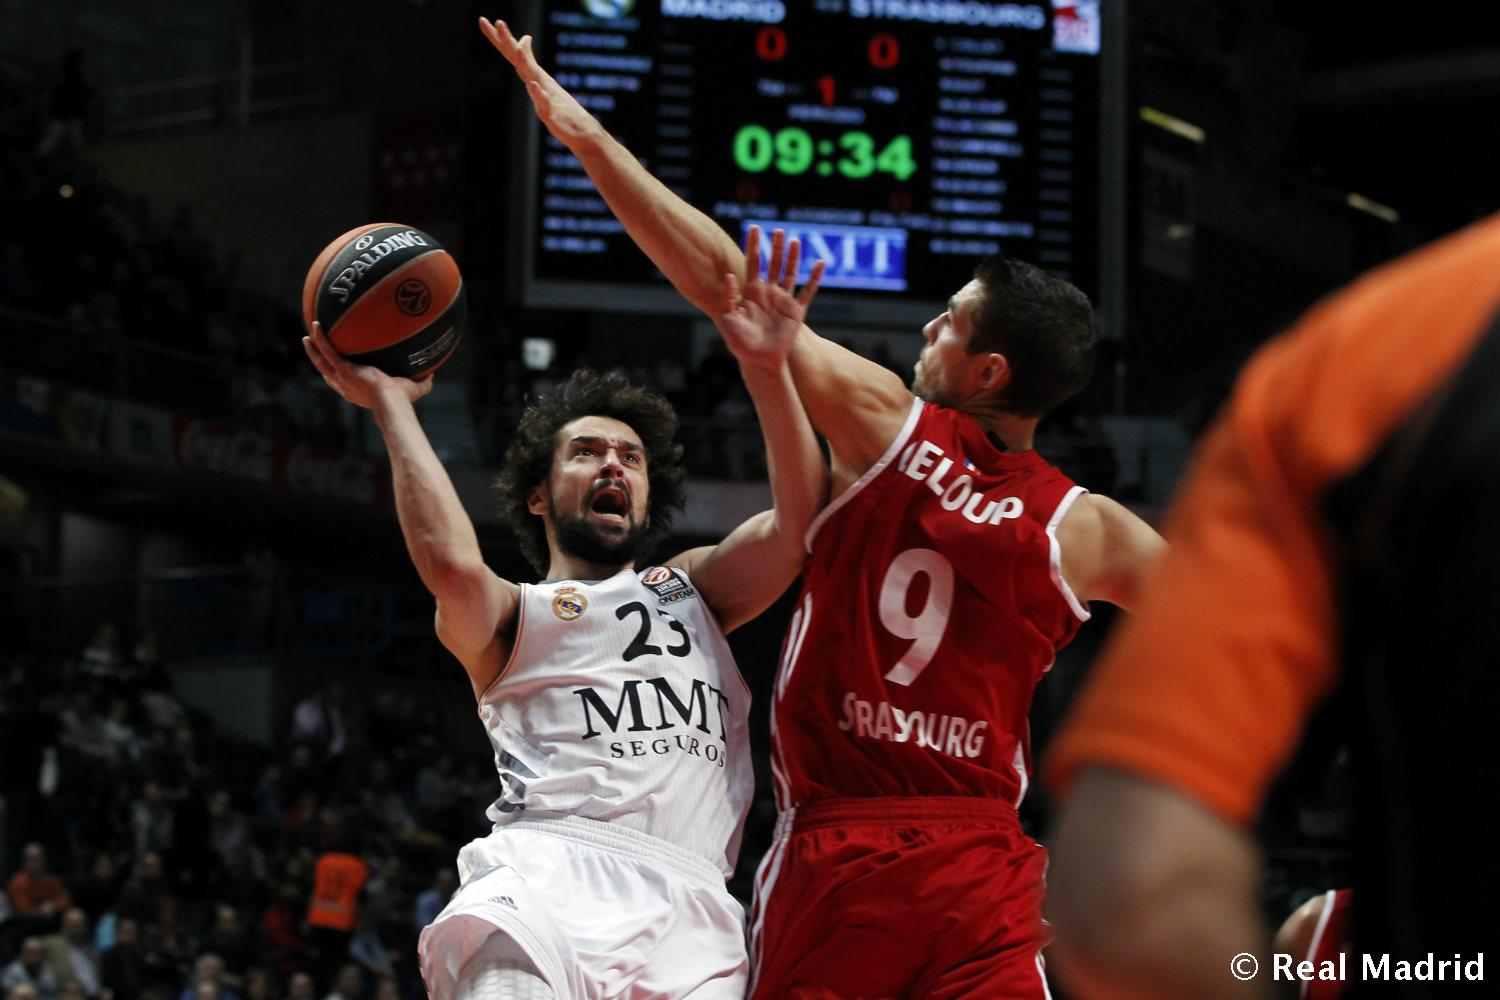 Real Madrid - Llull - 27-01-2014